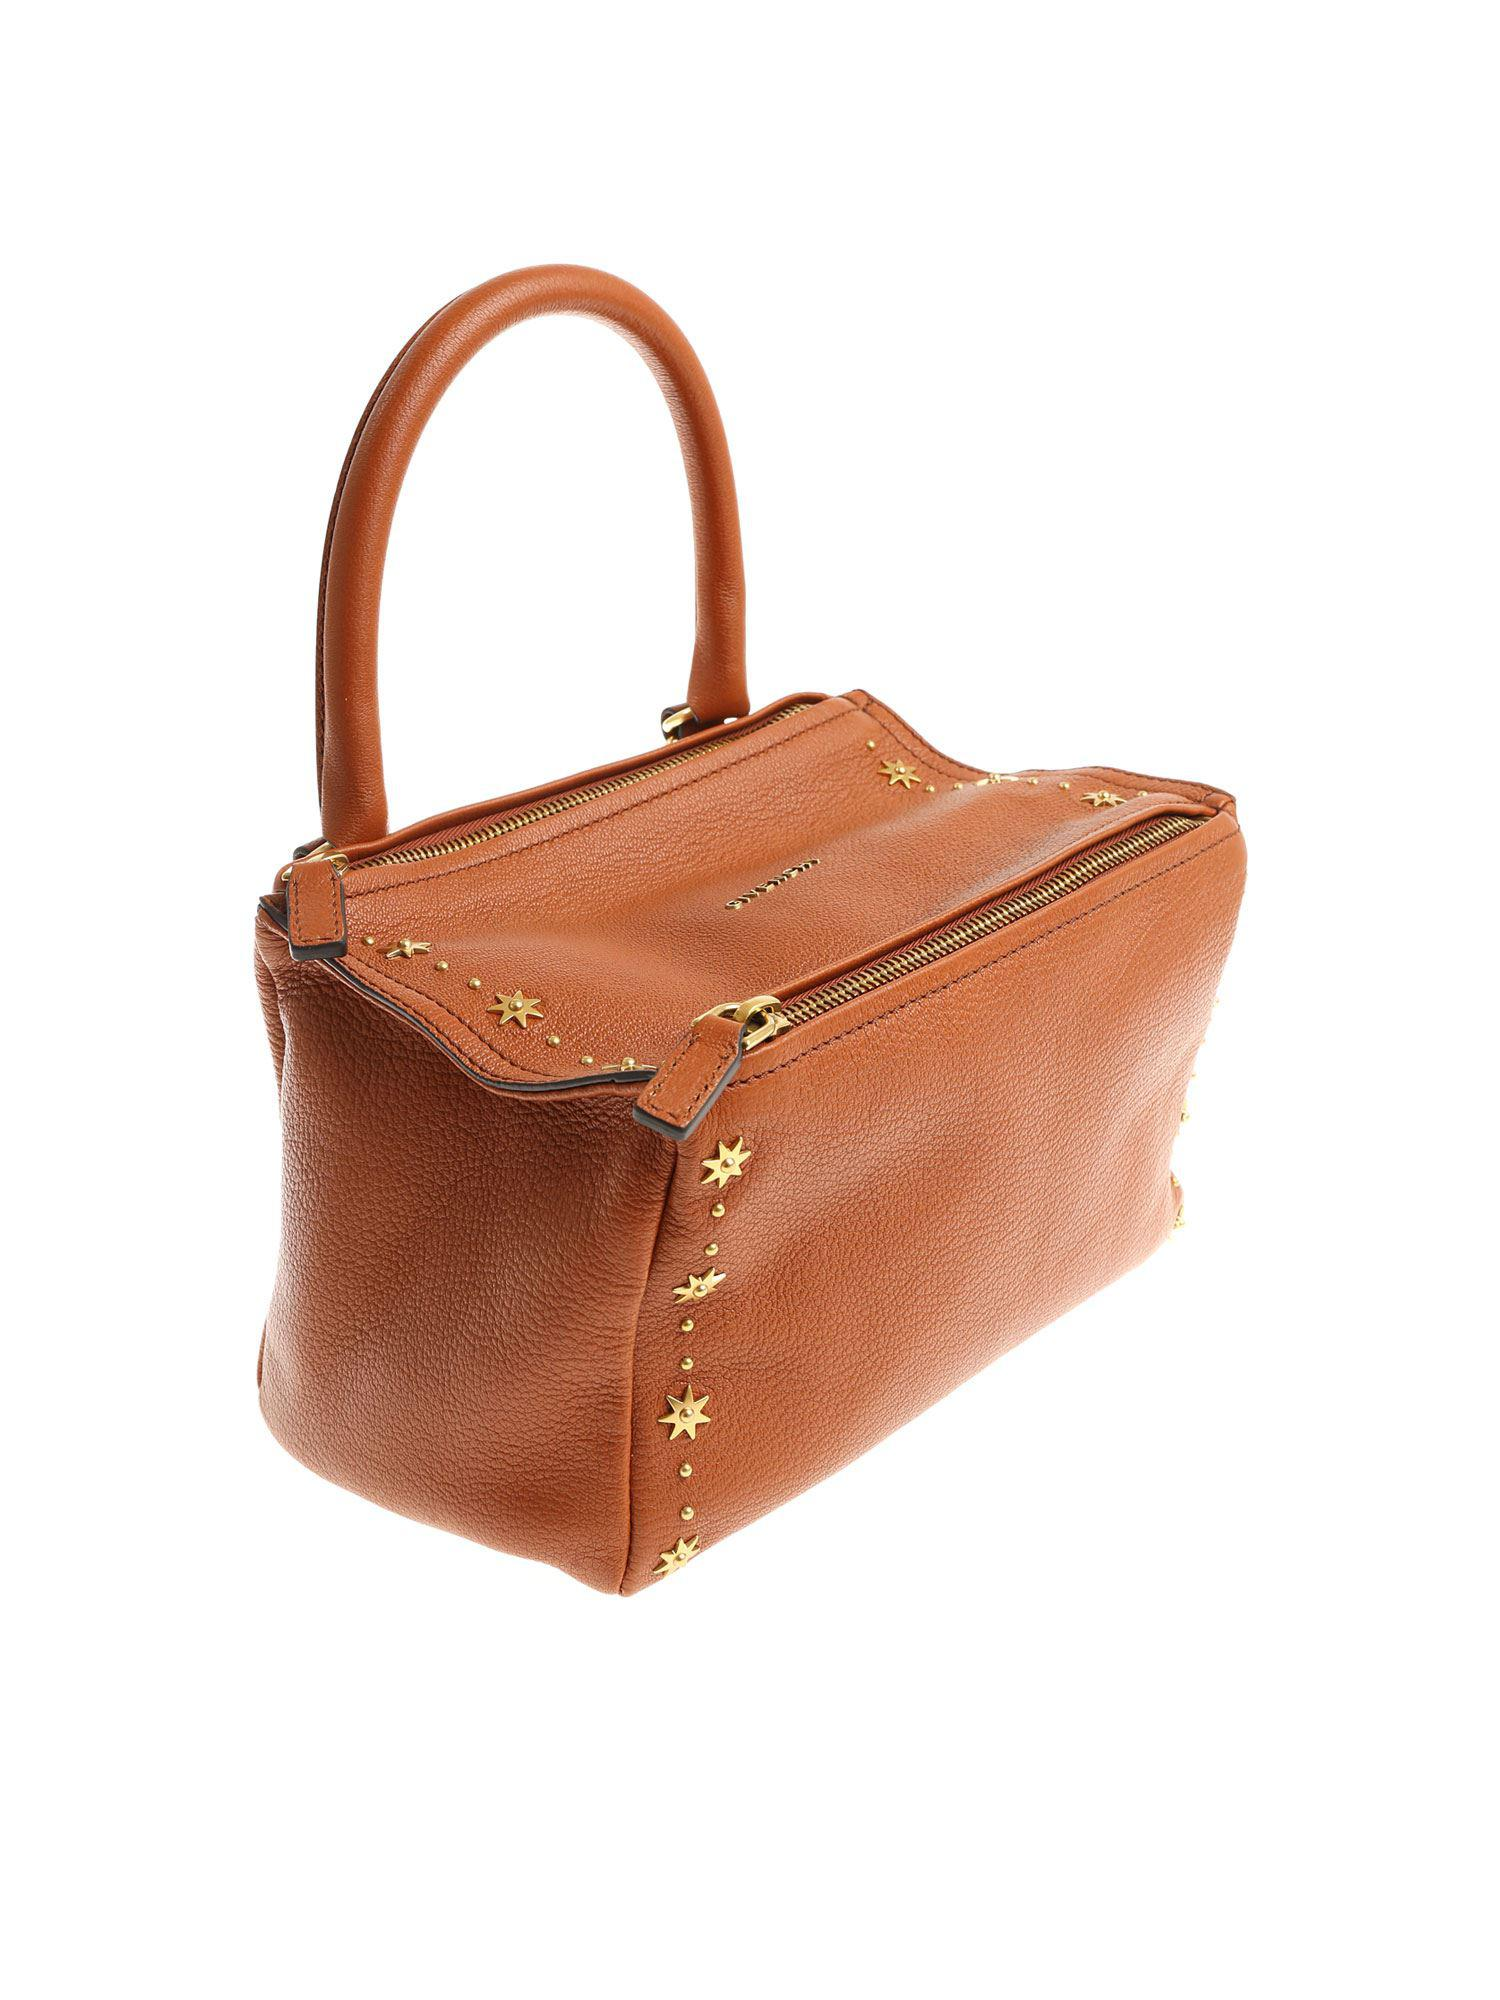 a939f16b7d Lyst - Givenchy Pandora Small Bag With Studs in Brown